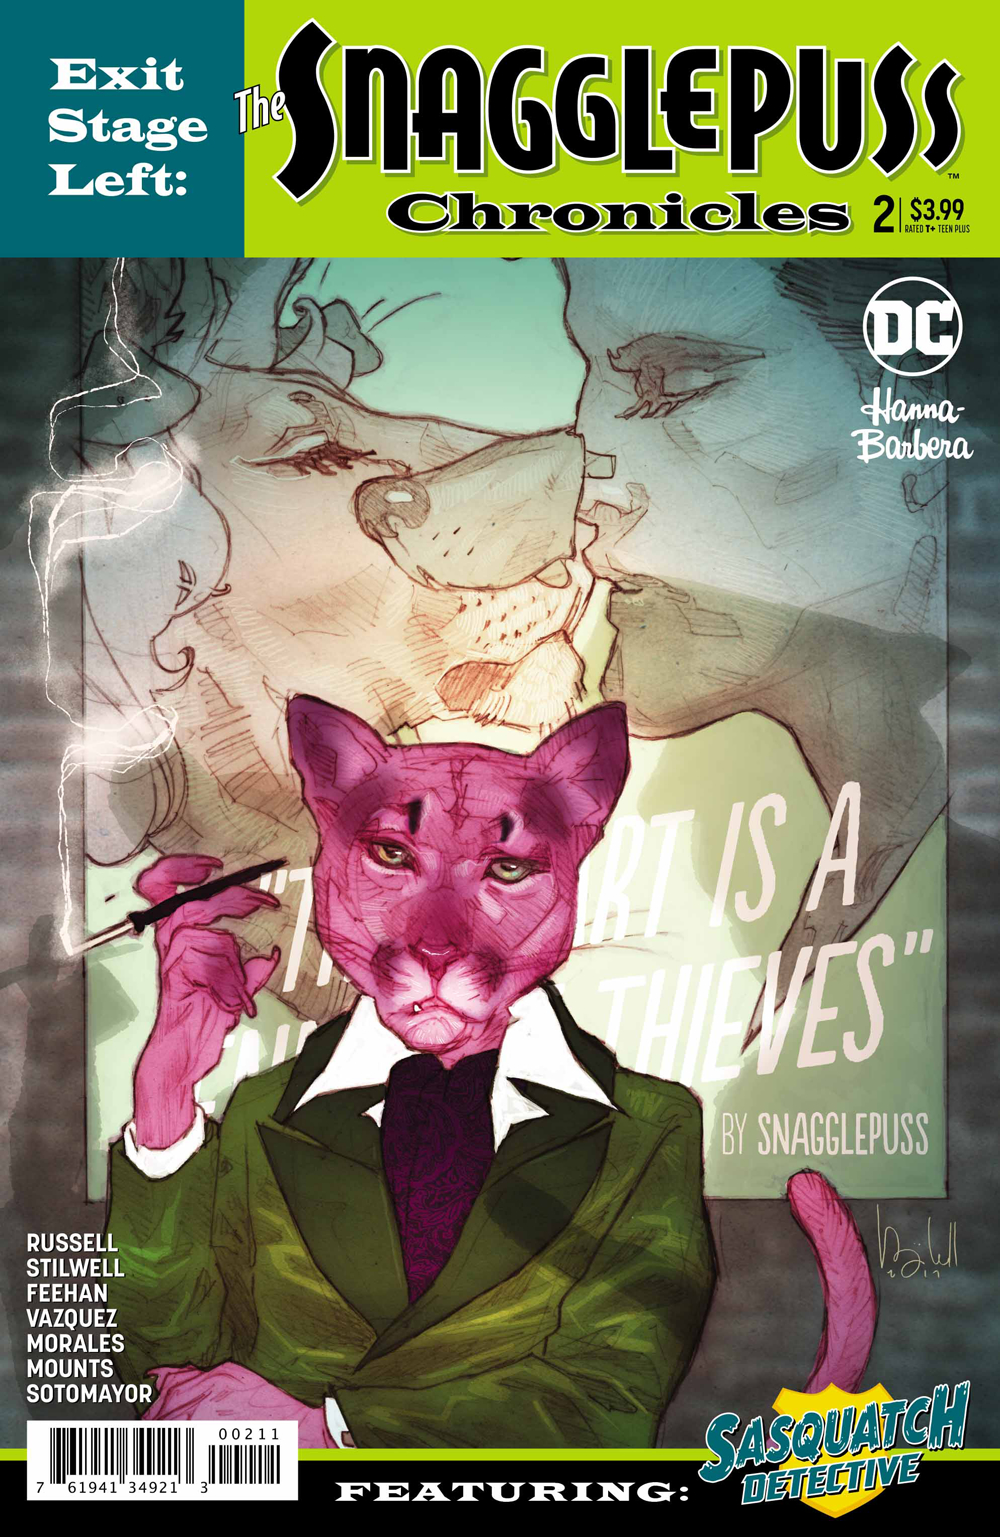 EXIT STAGE LEFT THE SNAGGLEPUSS CHRONICLES #2